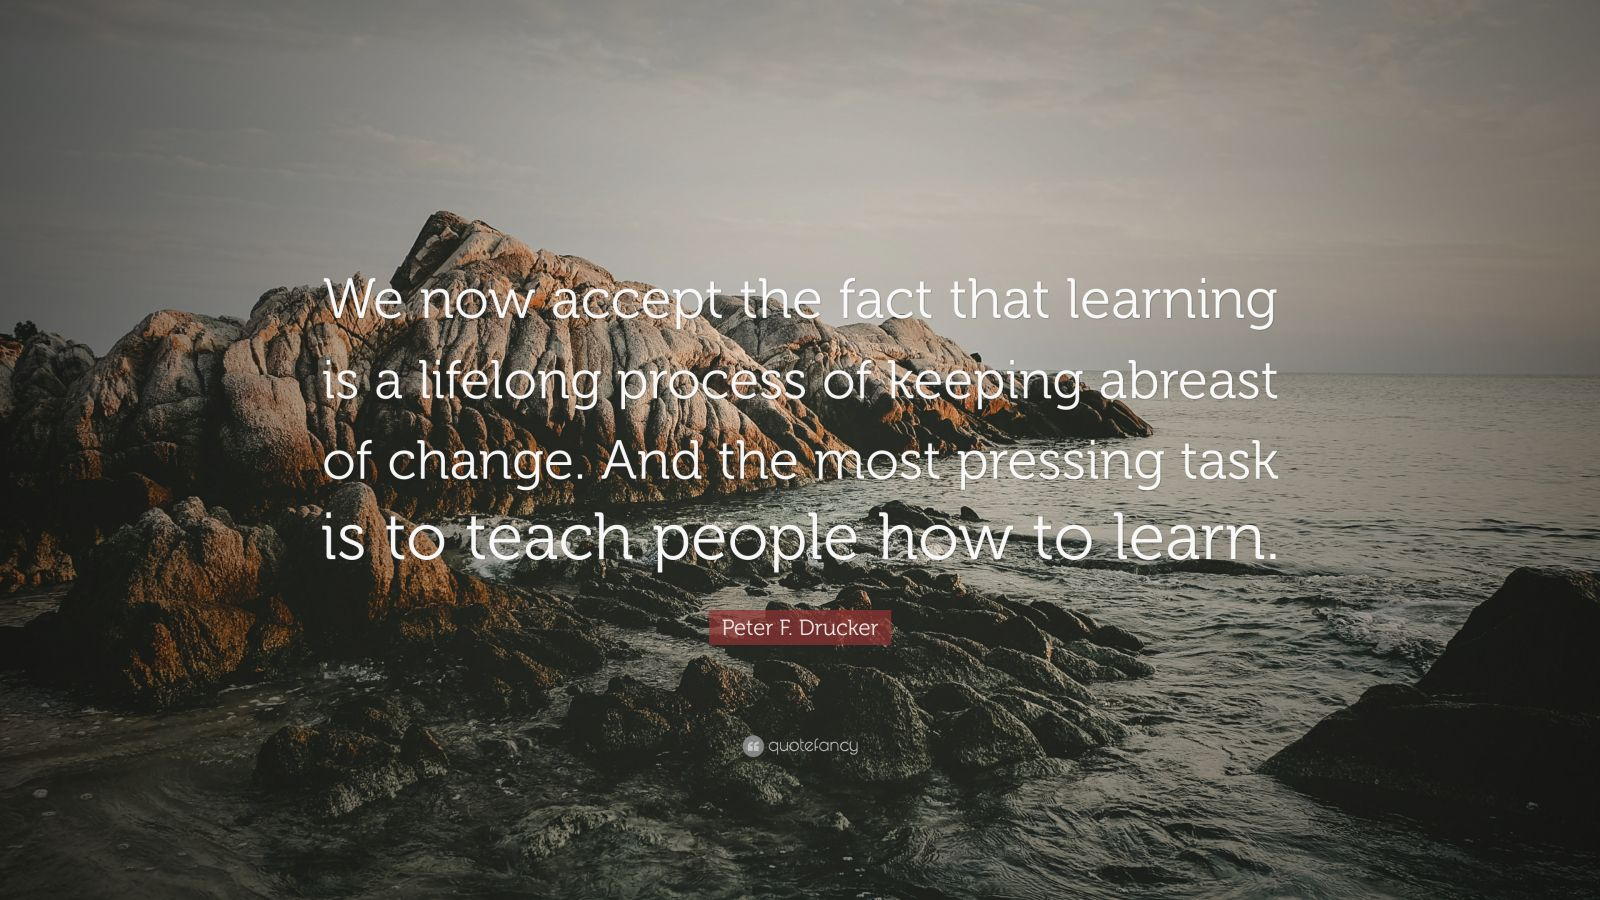 """Peter F. Drucker Quote: """"We now accept the fact that learning is a lifelong process of keeping abreast of change. And the most pressing task is to teach people how to learn."""""""